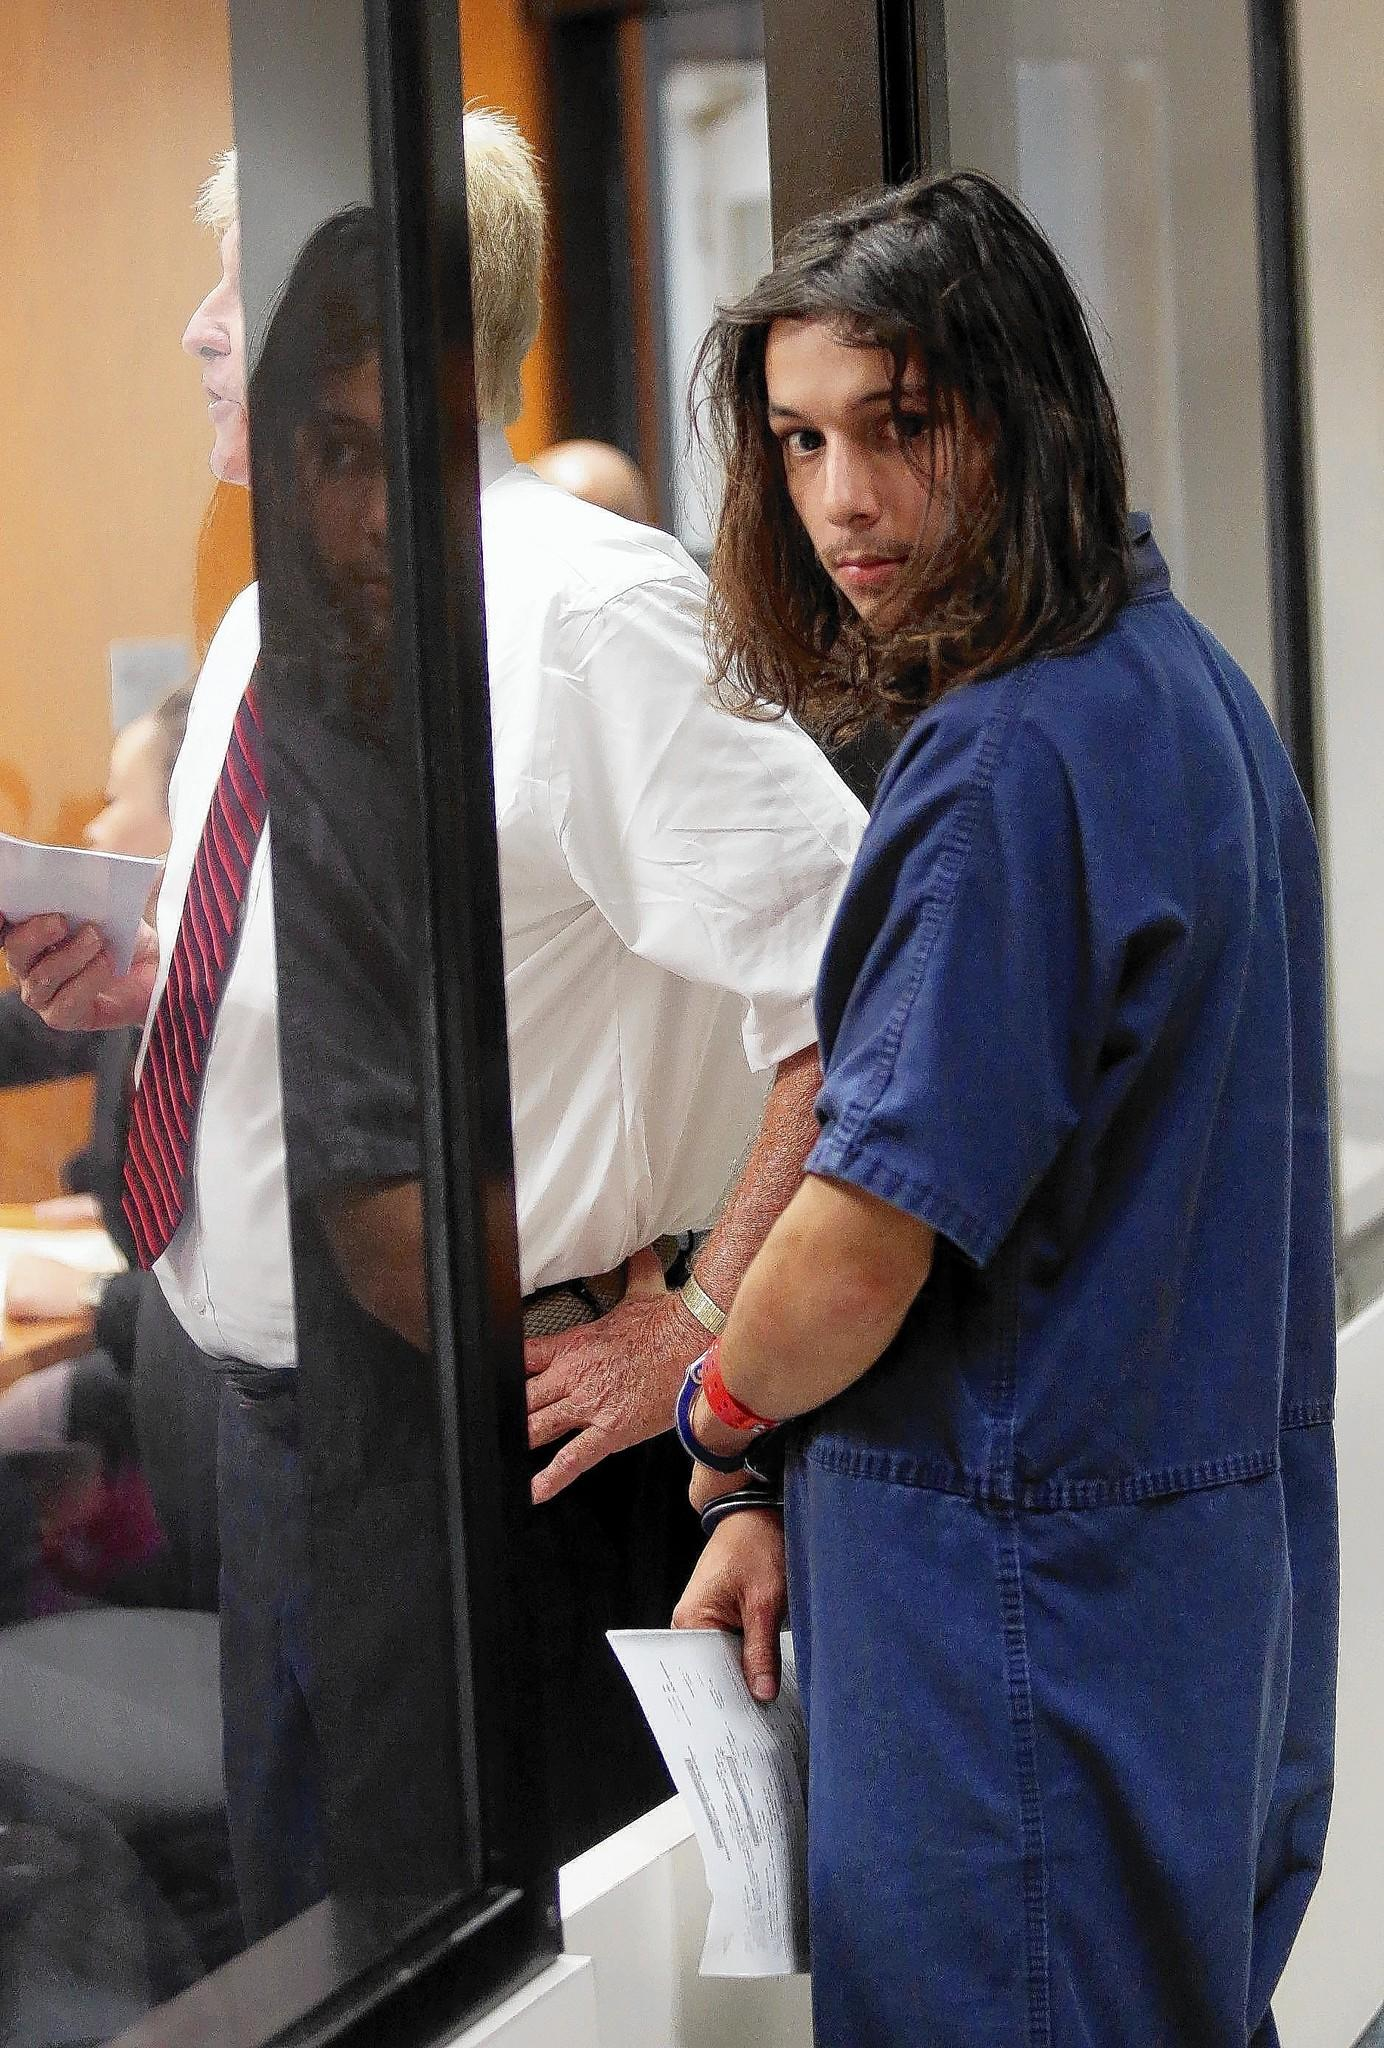 Christopher Rodriguez, 19, has his first appearance on charges of first-degree premeditated murder at the the John E. Polk Correctional Facility in Seminole county, on Tuesday, January 21, 2014. (Ricardo Ramirez Buxeda / Orlando Sentinel)